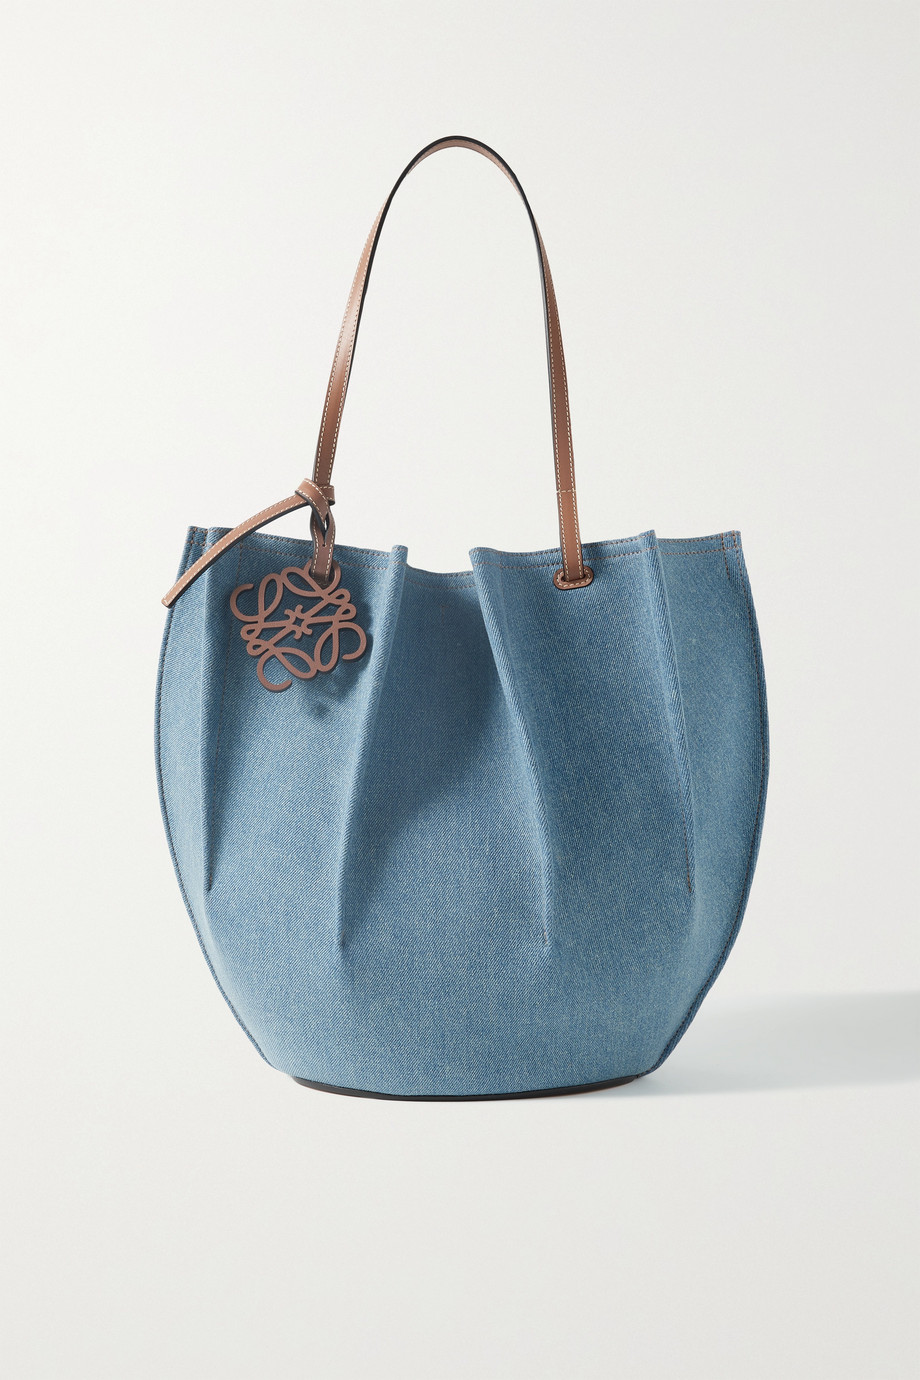 LOEWE + Paula's Ibiza Shell medium leather-trimmed denim tote